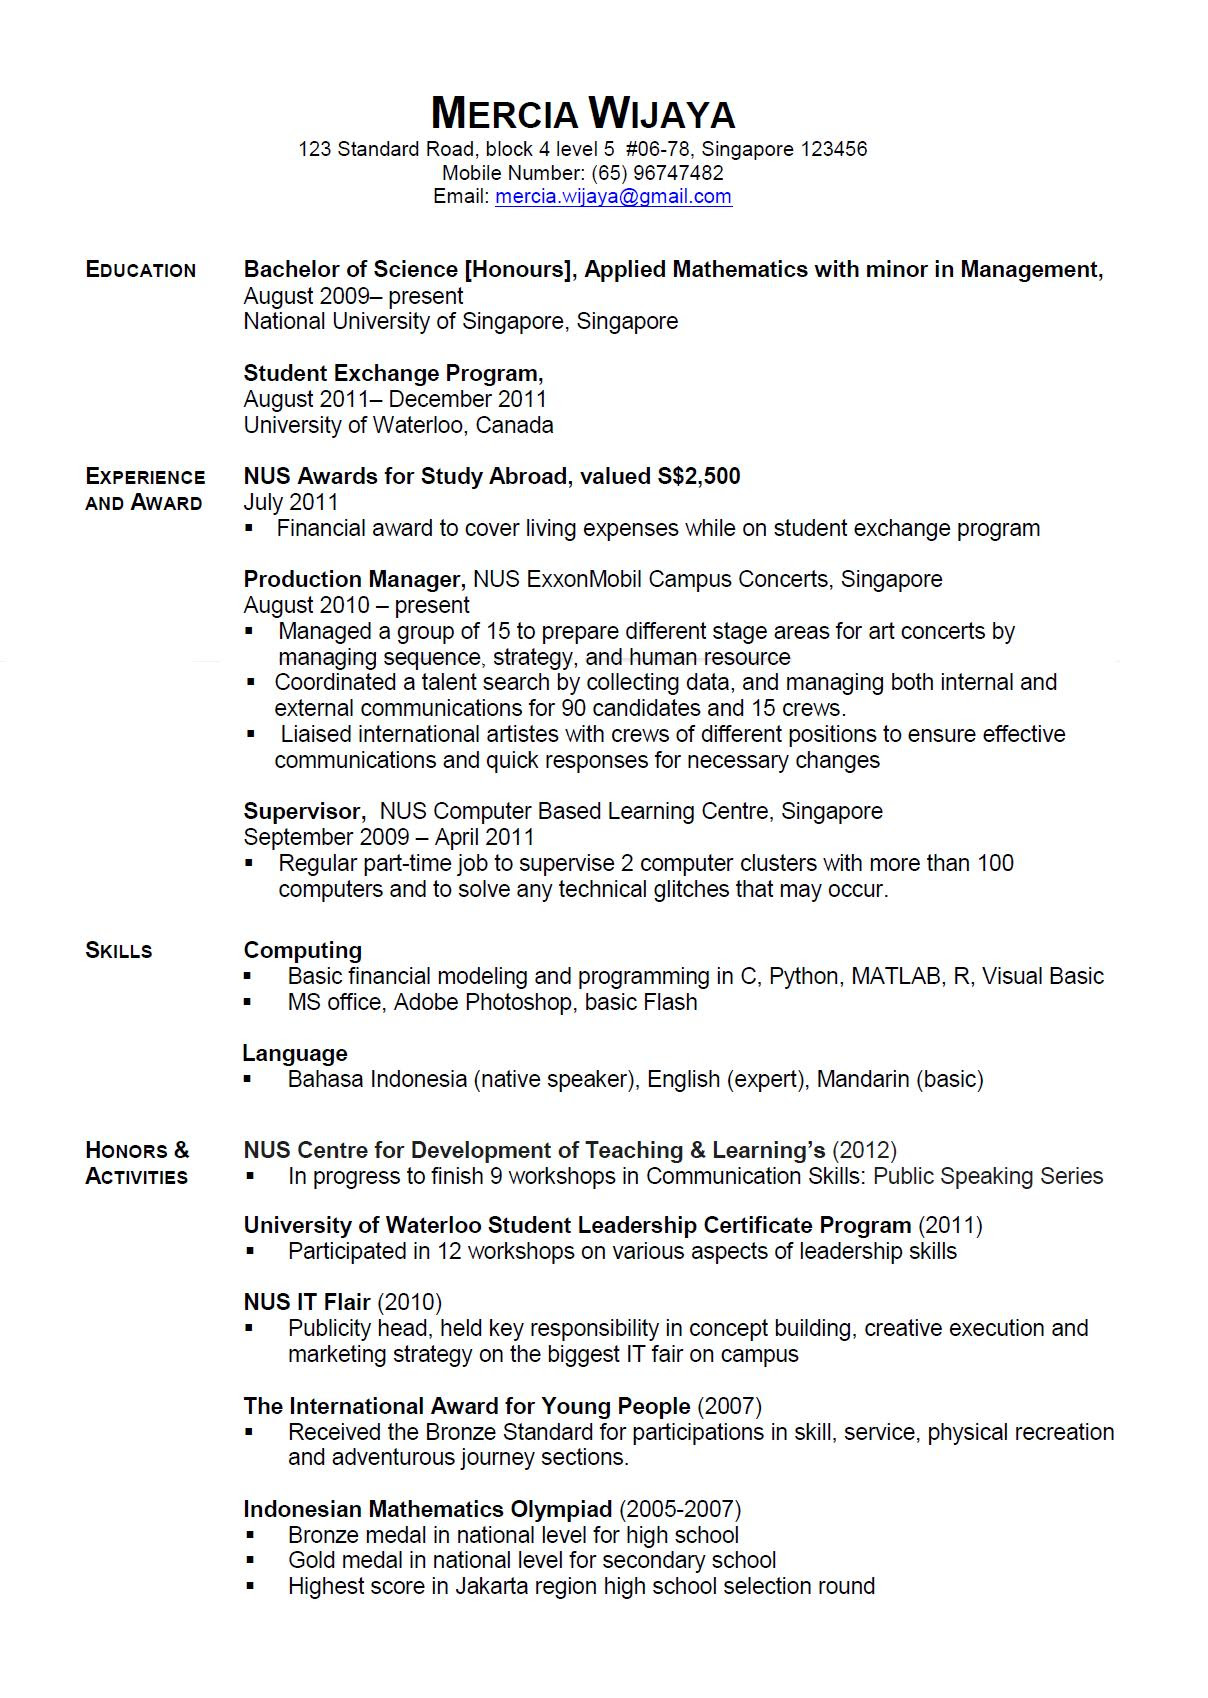 application letter qualities